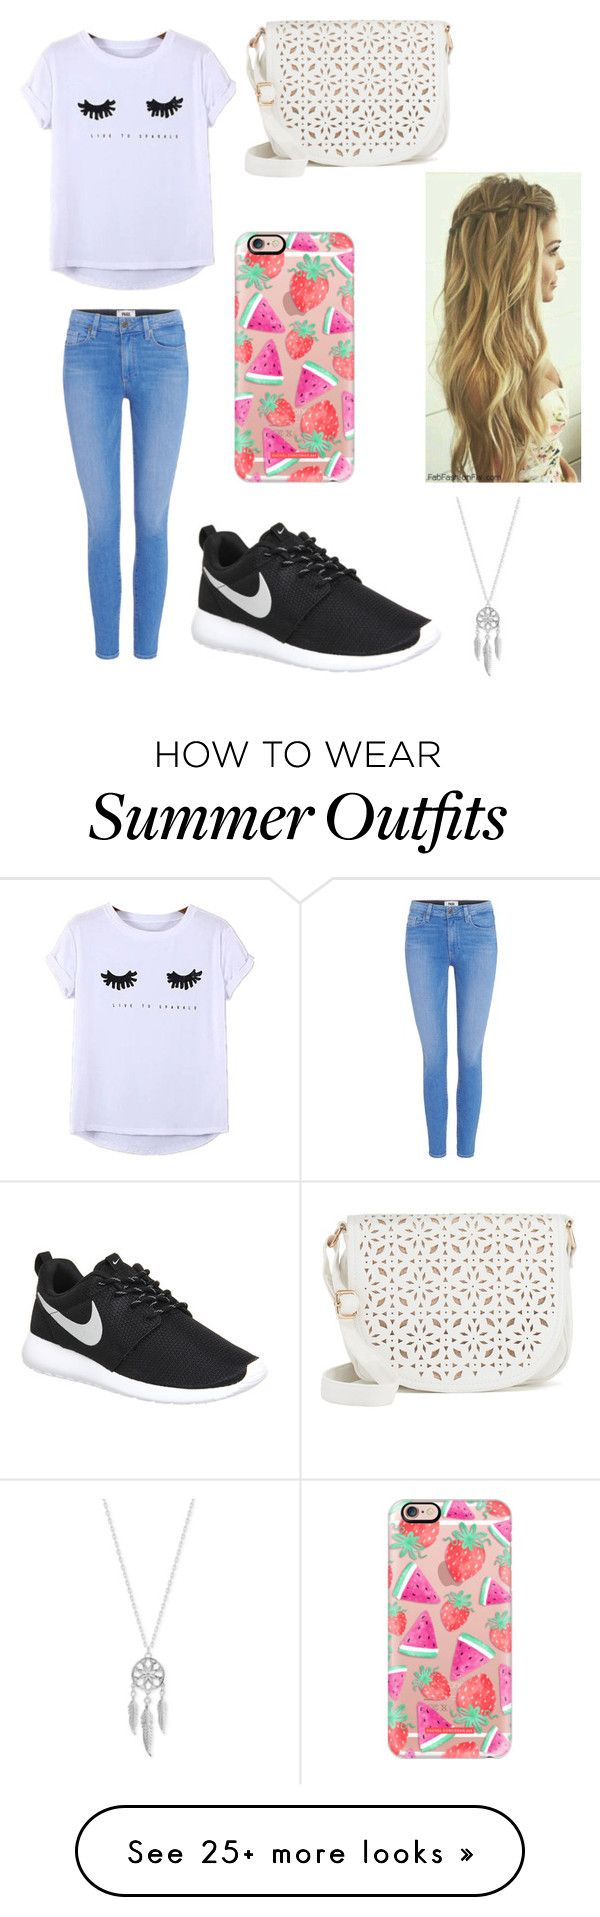 """""""School Outfit"""" by chloemooree on Polyvore featuring Chicnova Fashion, Paige Denim, NIKE, Under One Sky, Casetify and Lucky Brand"""